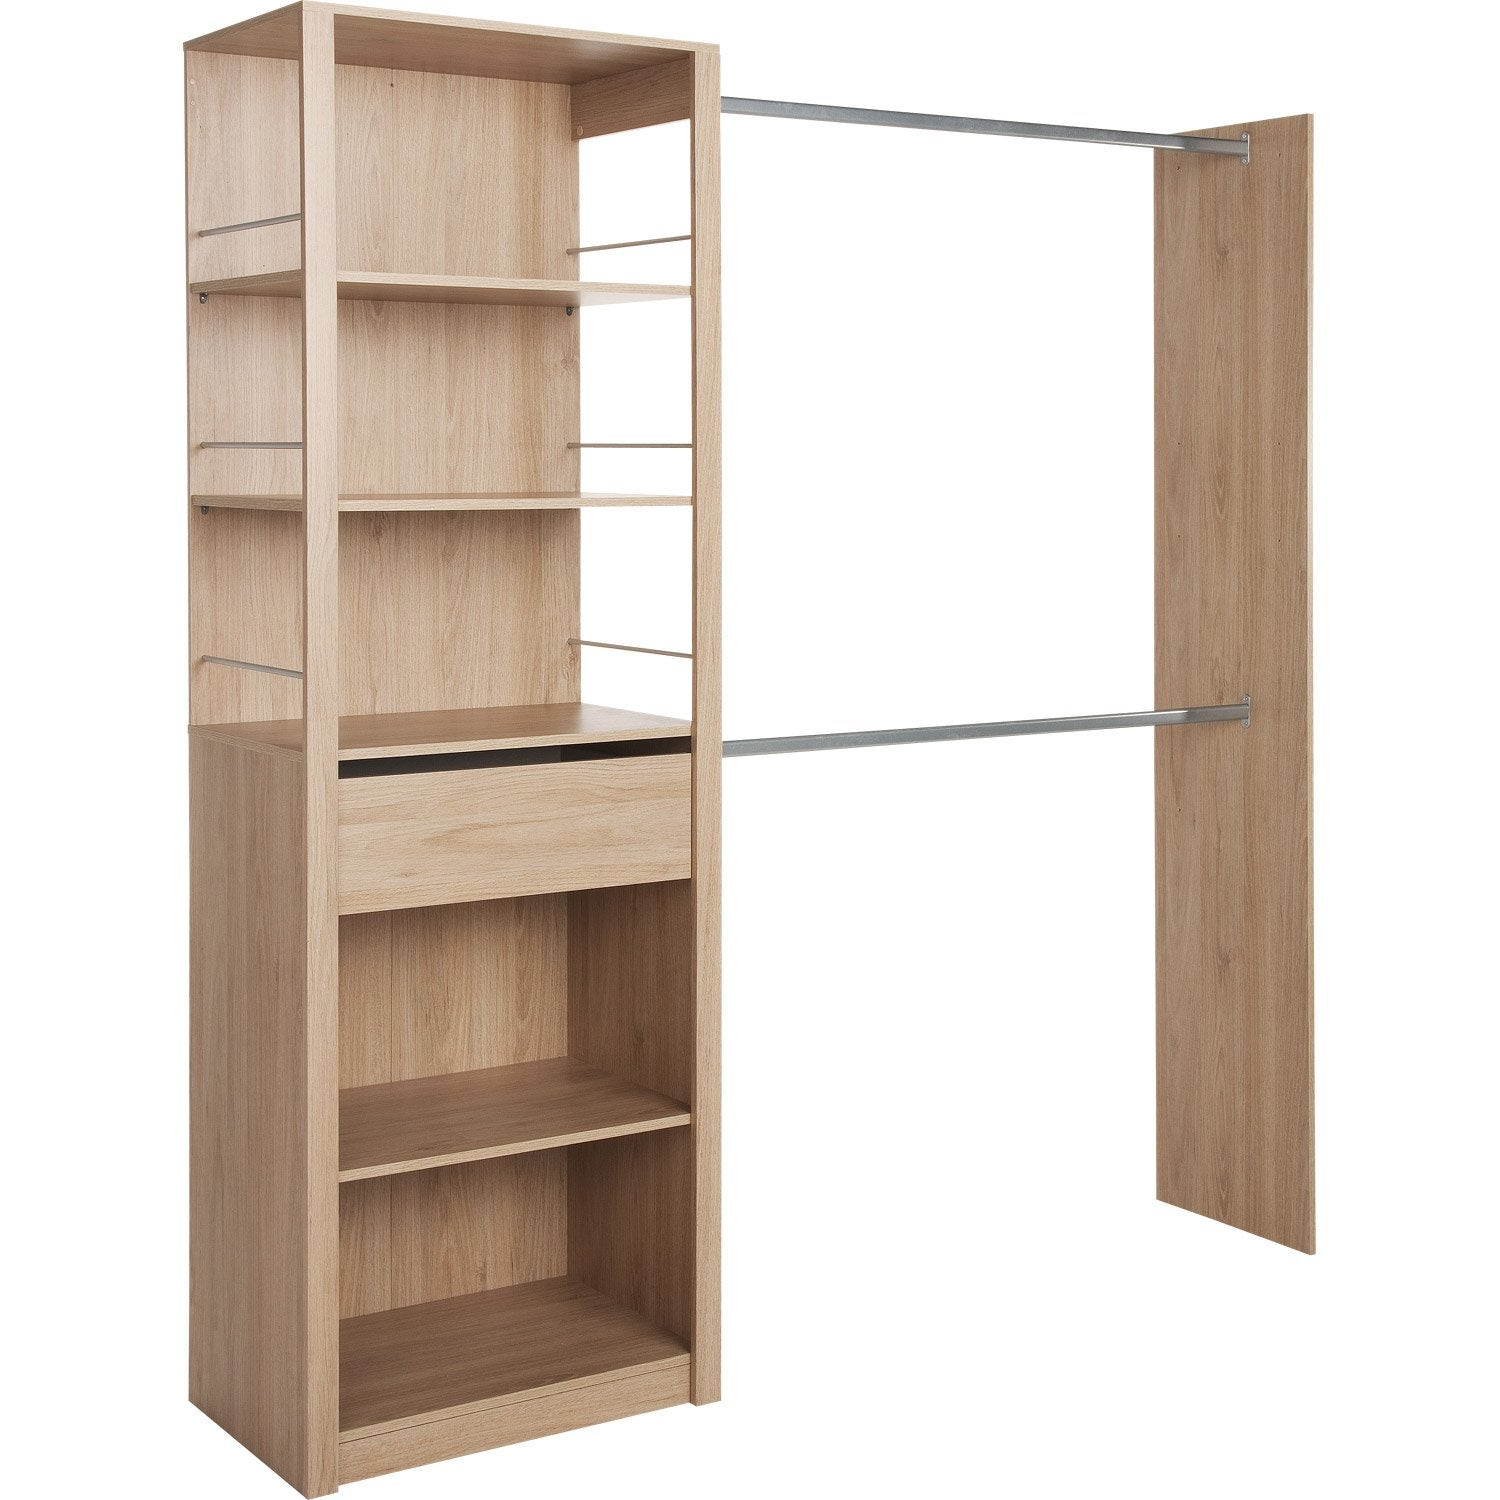 caisson armoire leroy merlin awesome barre de penderie escamotable gris h x l x p leroy merlin